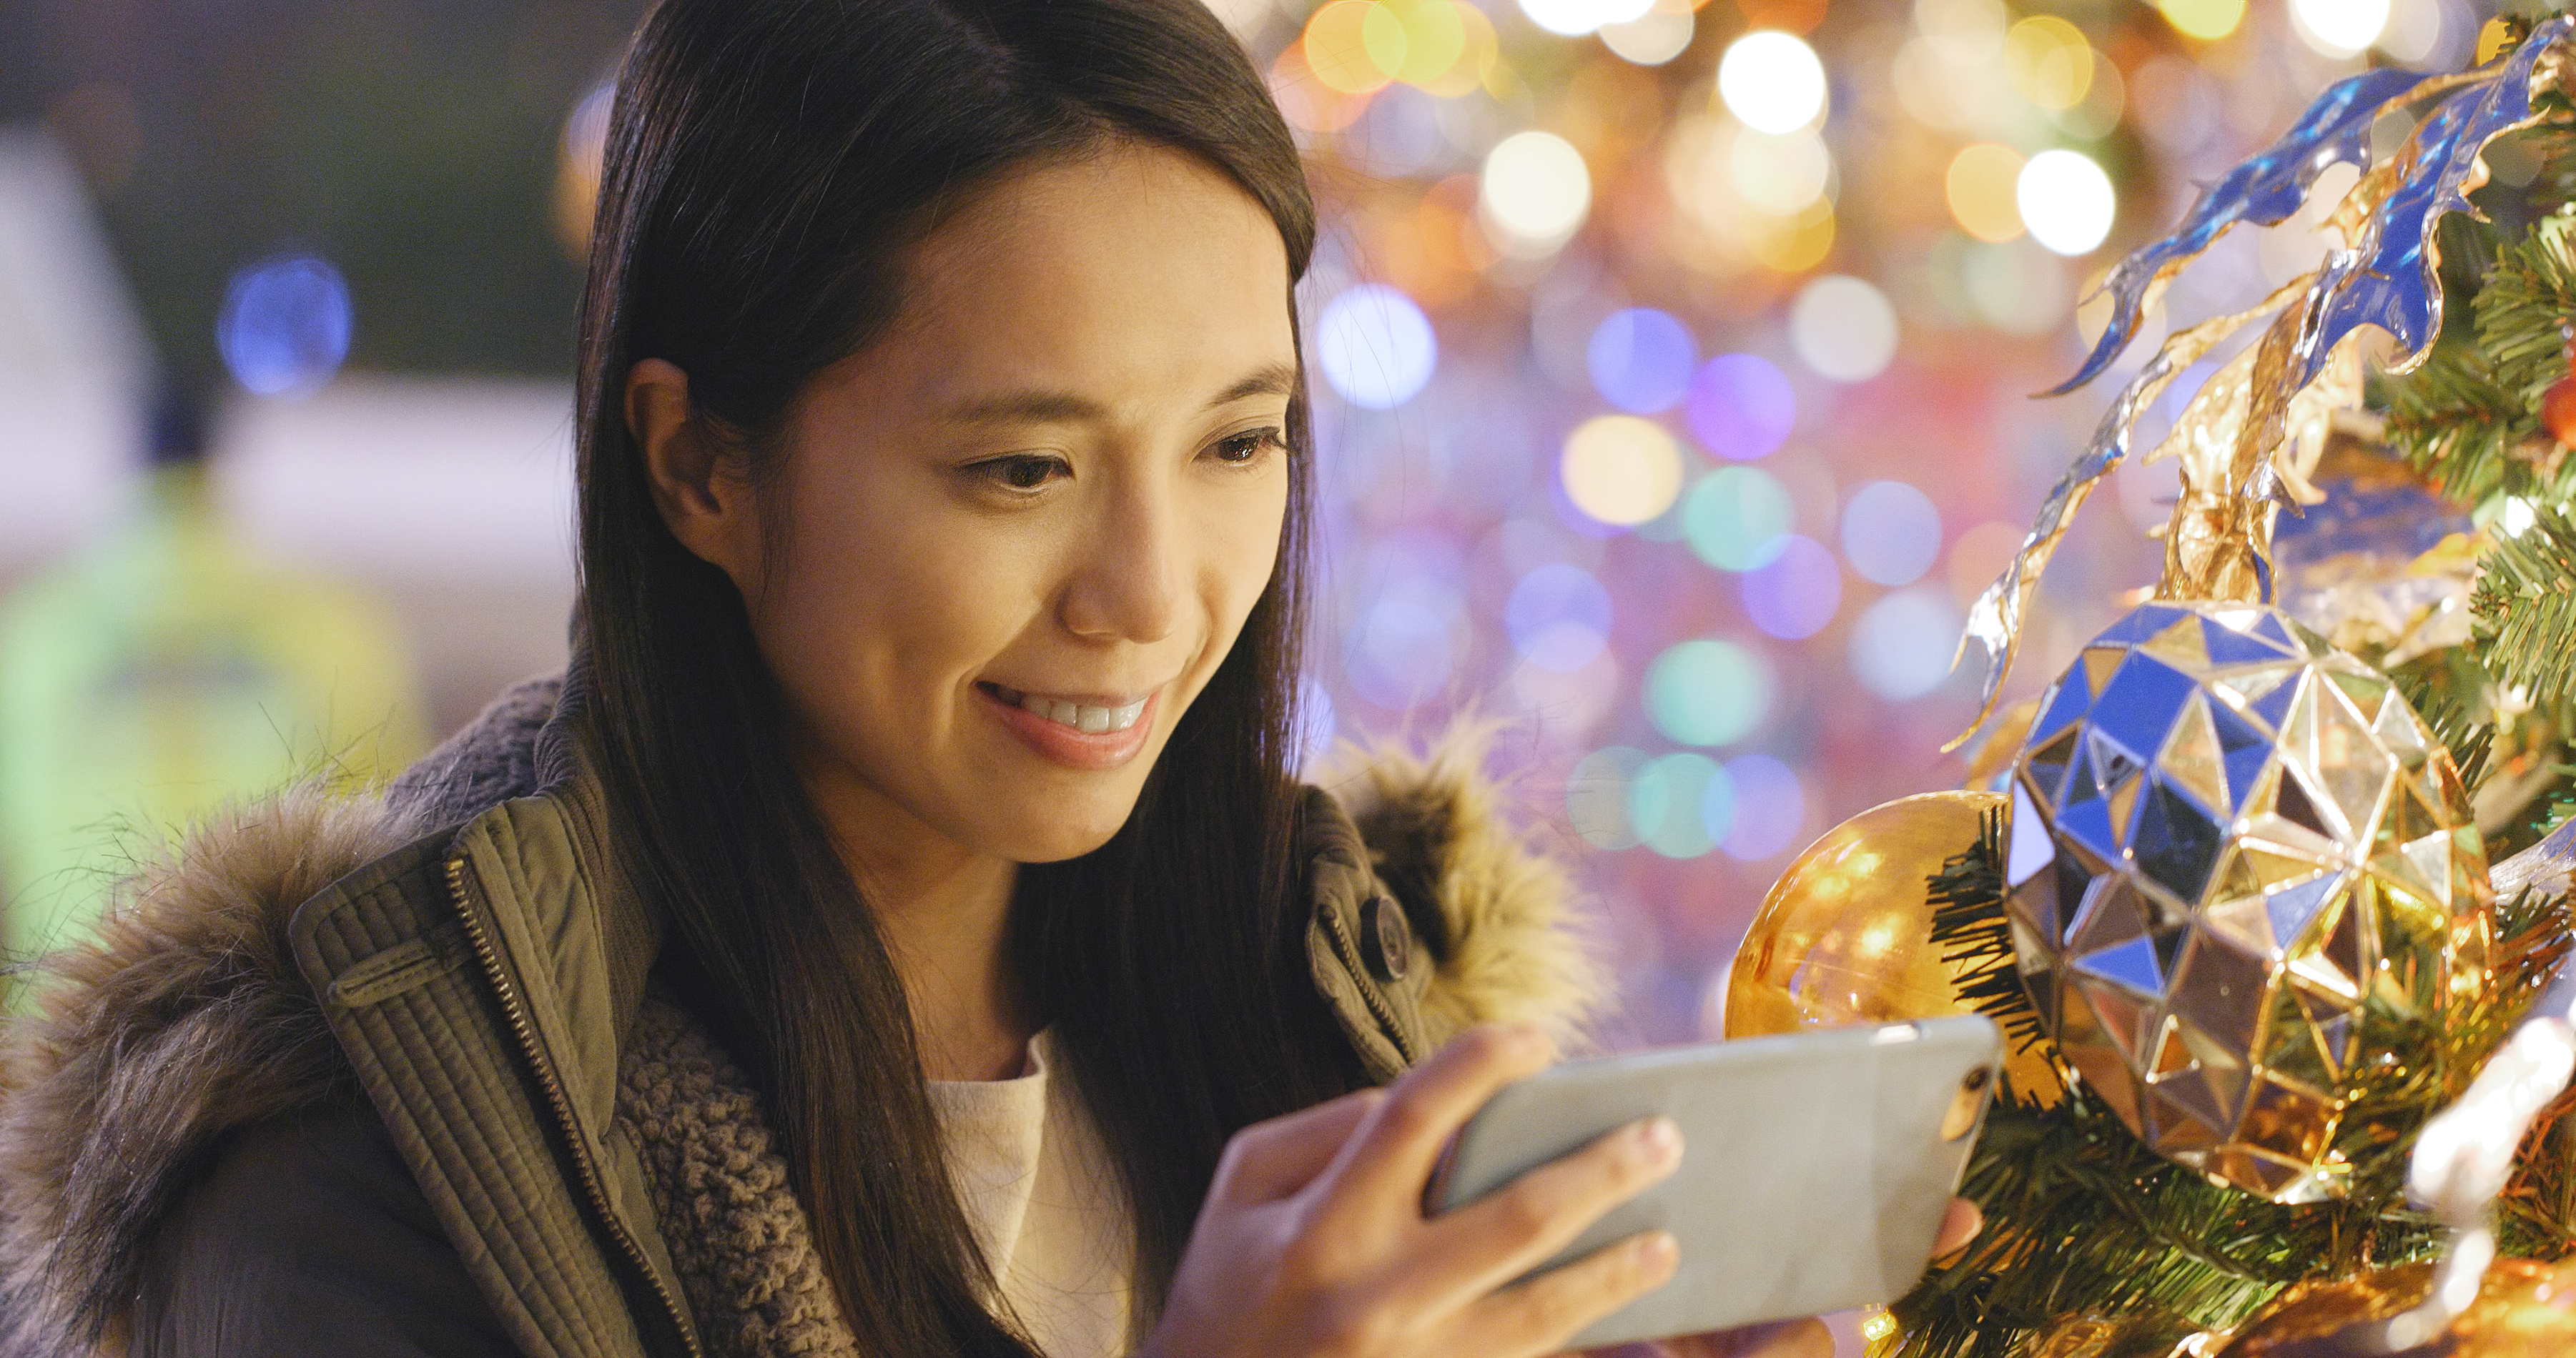 Woman taking photo on cellphone with Christmas tree decoration